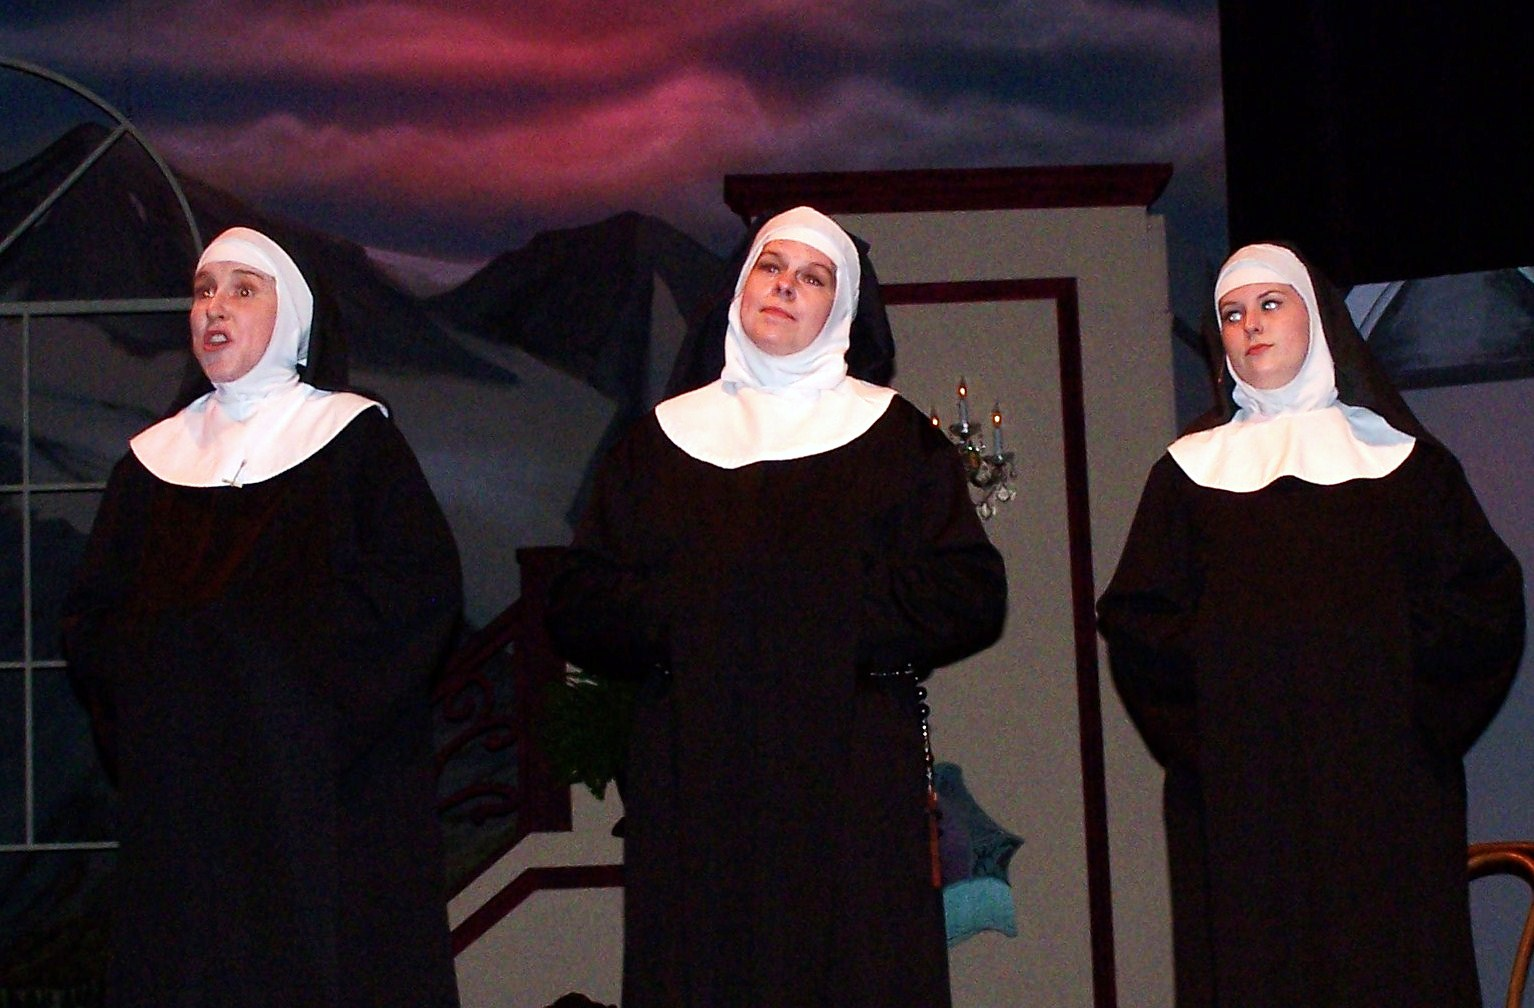 Sound_of_Music_Nuns_4